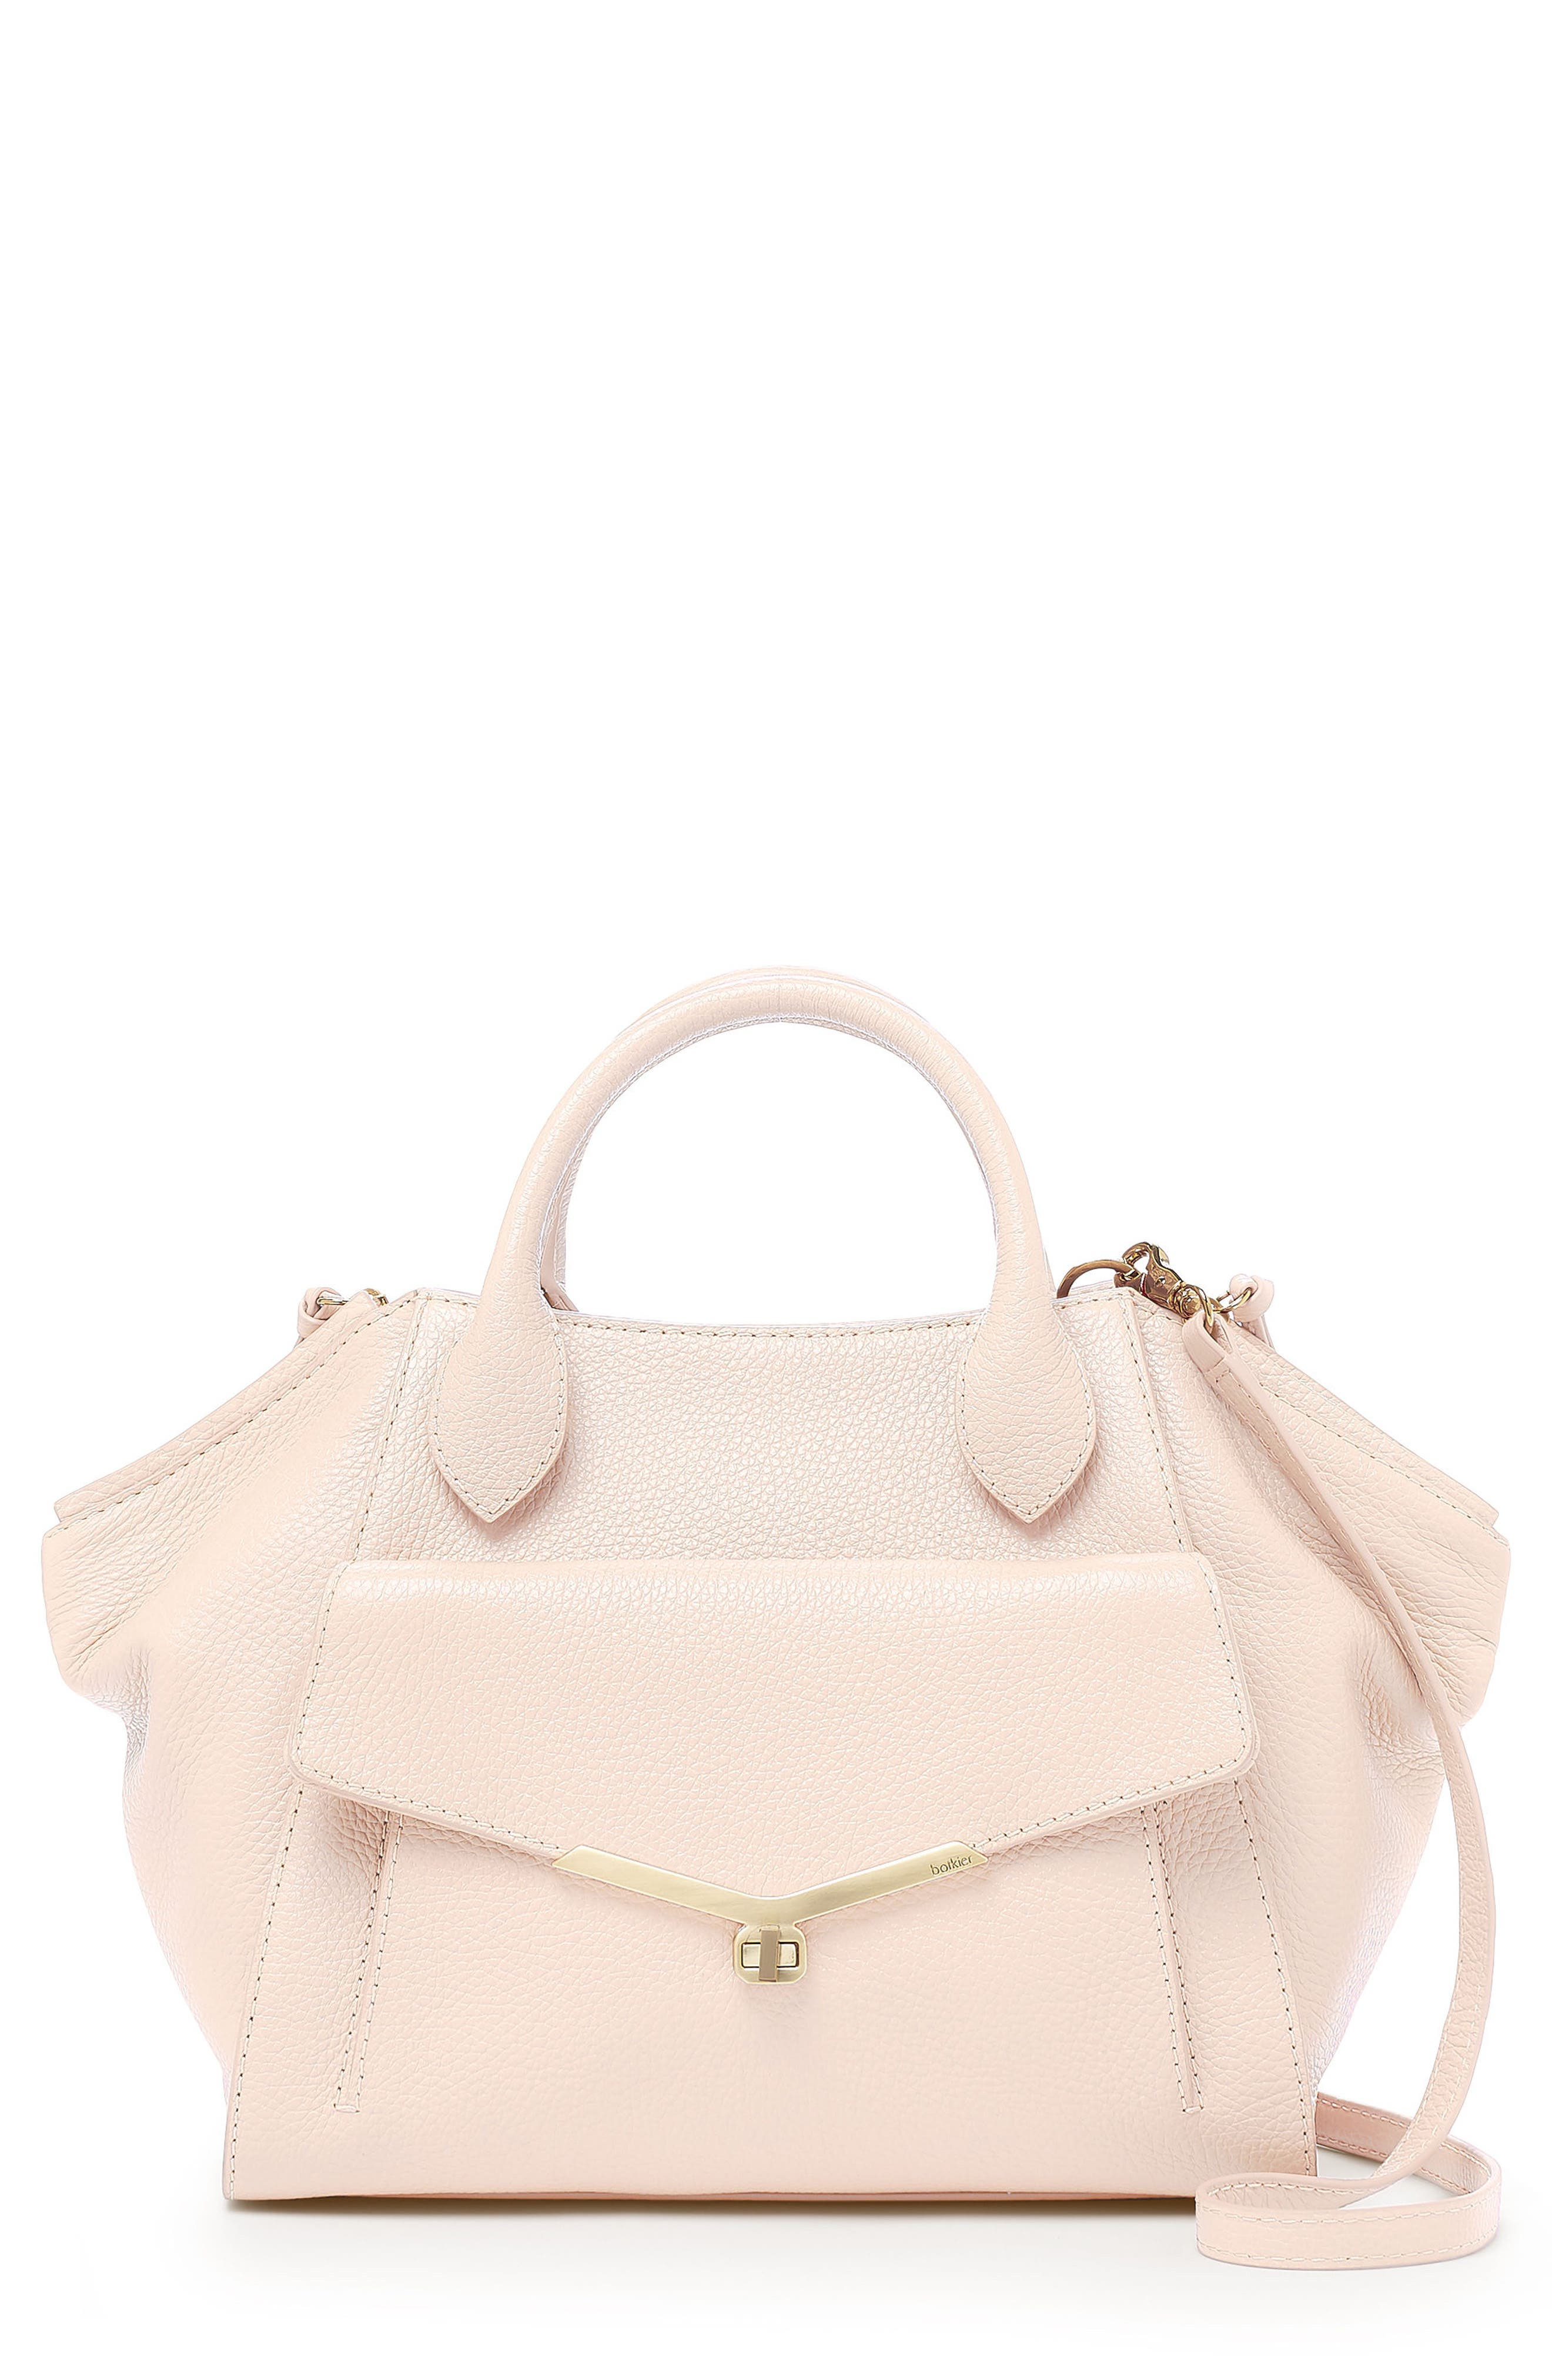 Vivi Calfskin Leather Satchel,                         Main,                         color, Blossom